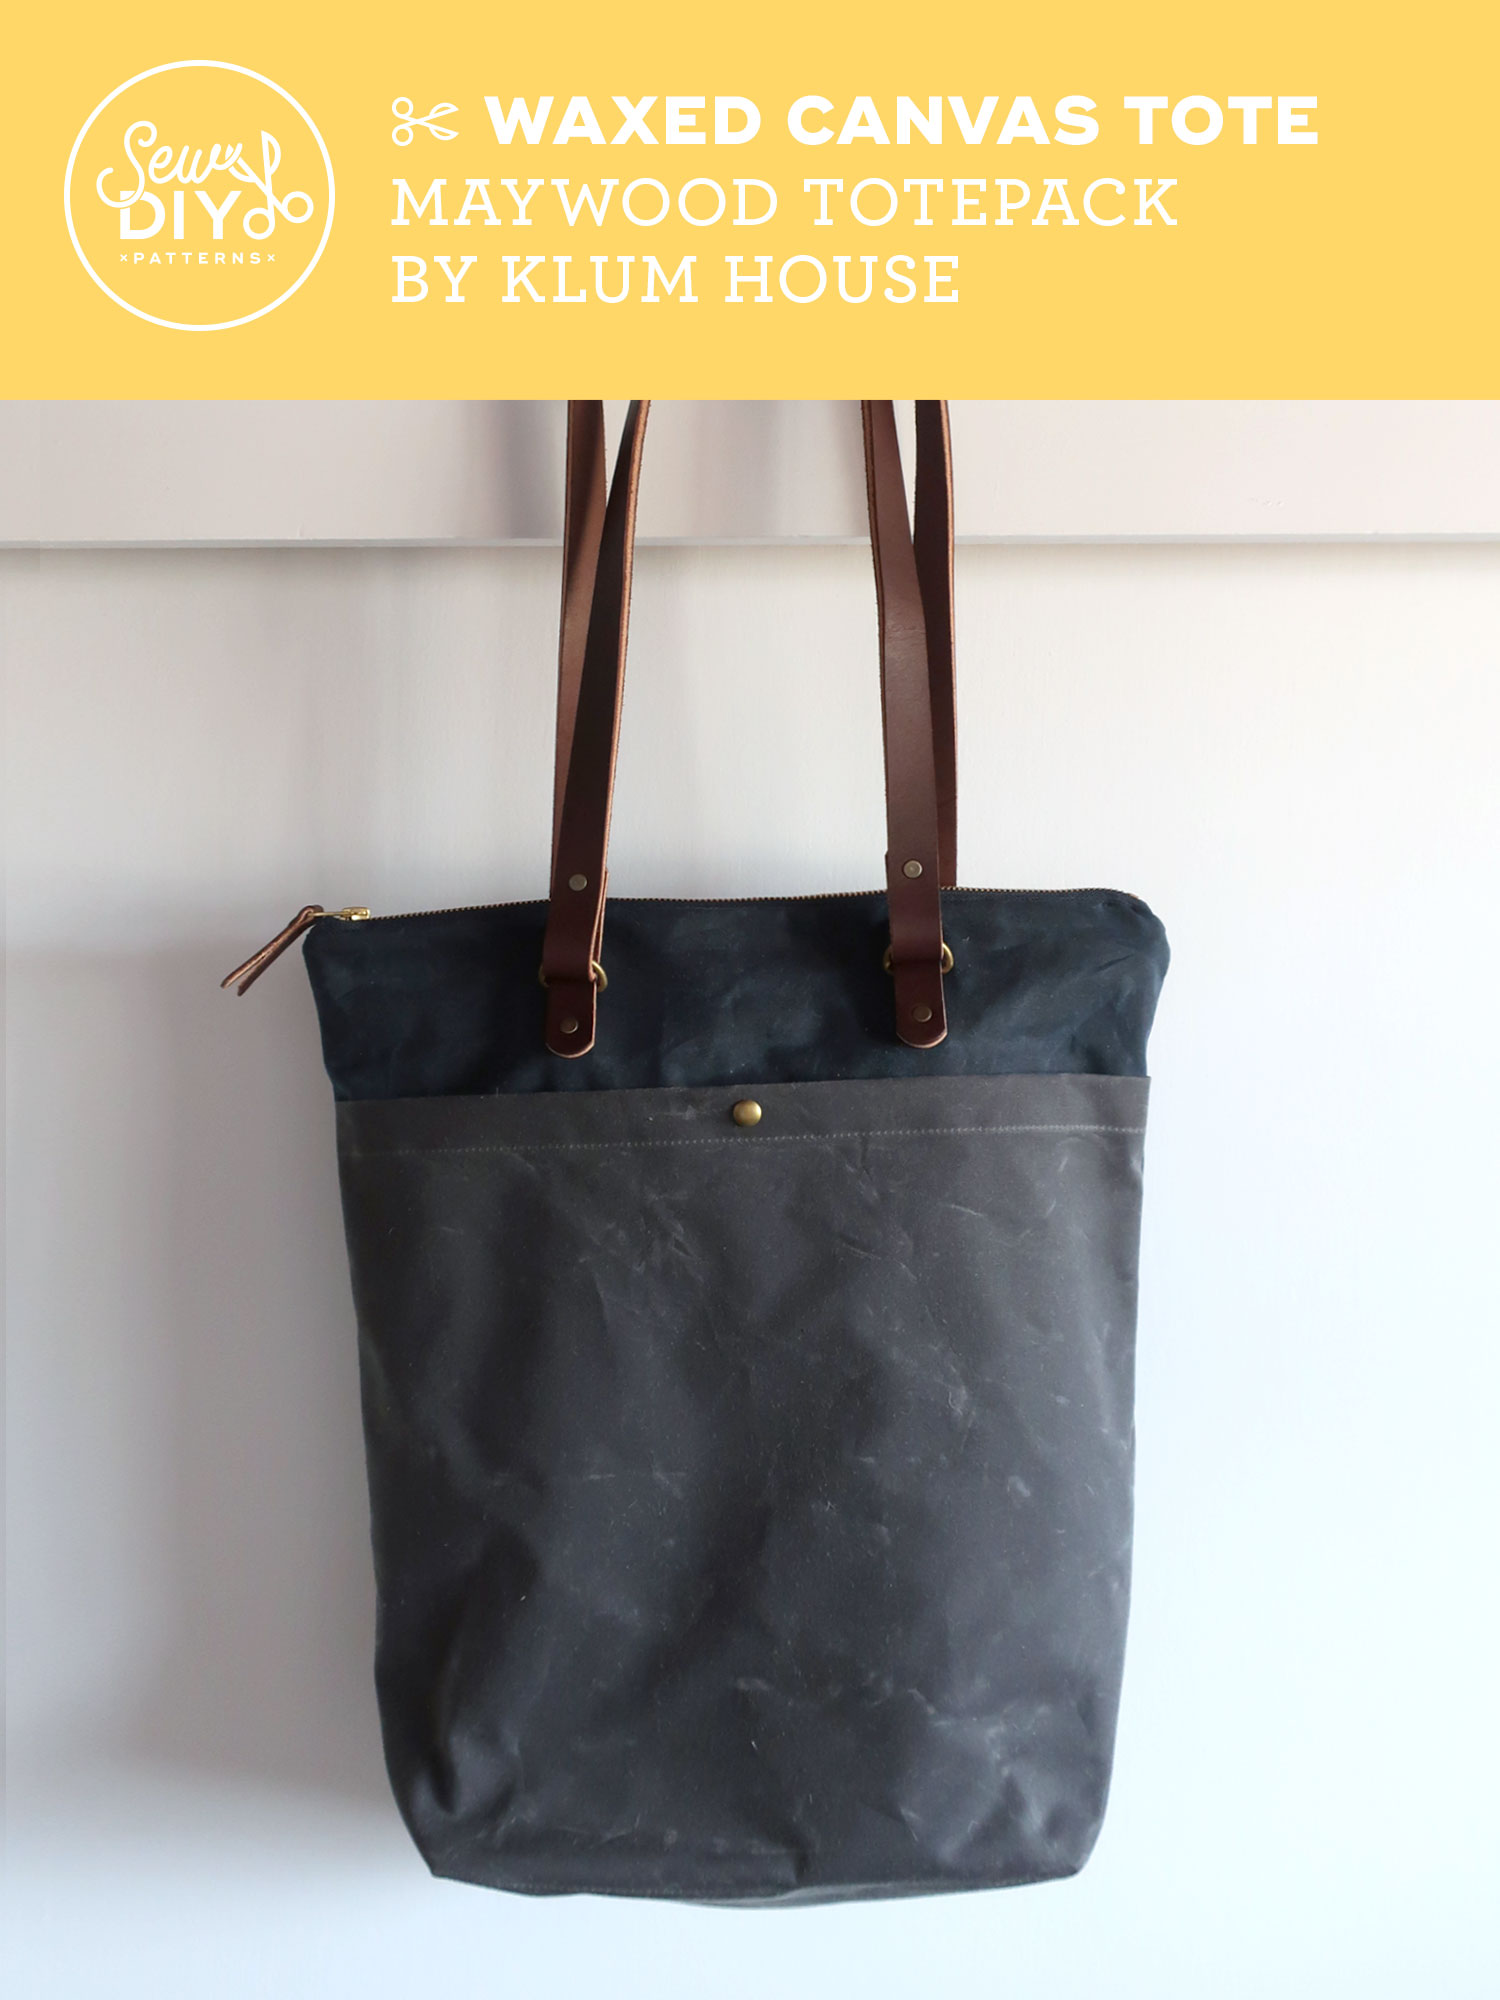 Diy Convertible Tote Backpack Maywood Totepack By Klum House Sew Diy